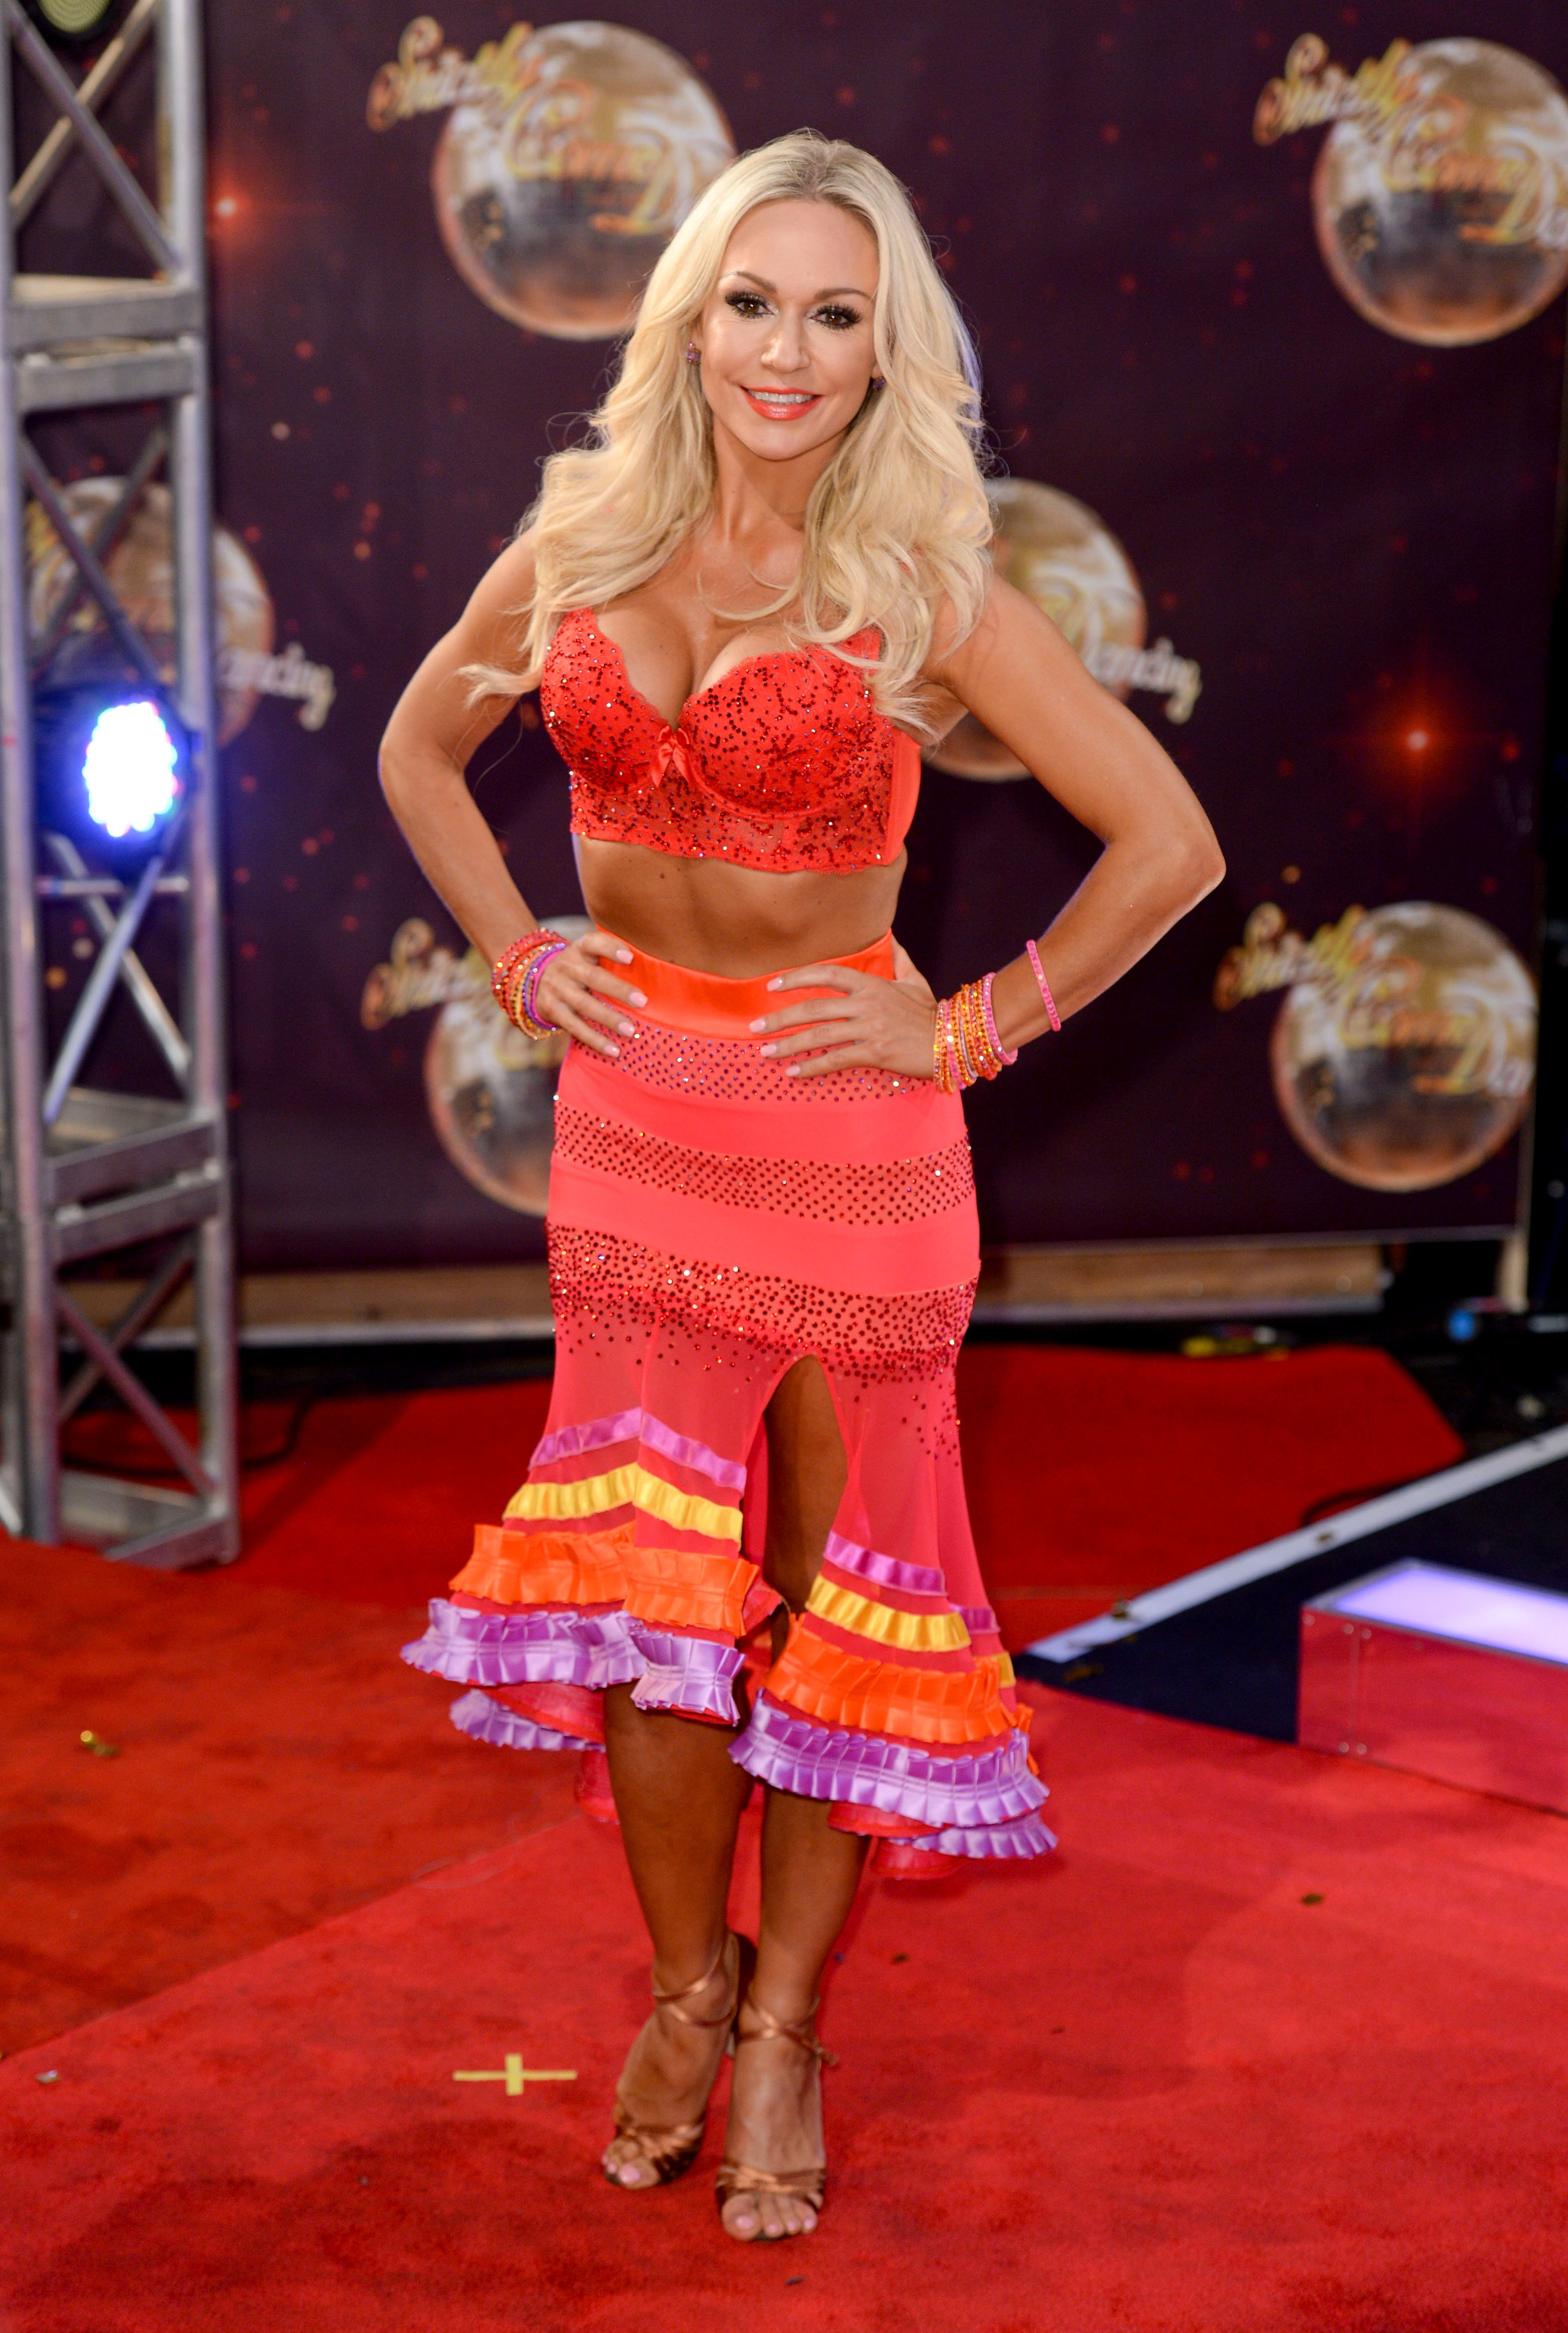 Kristina Rihanoff Accuses 'Strictly Come Dancing' Of Rehashing Old Performance Of